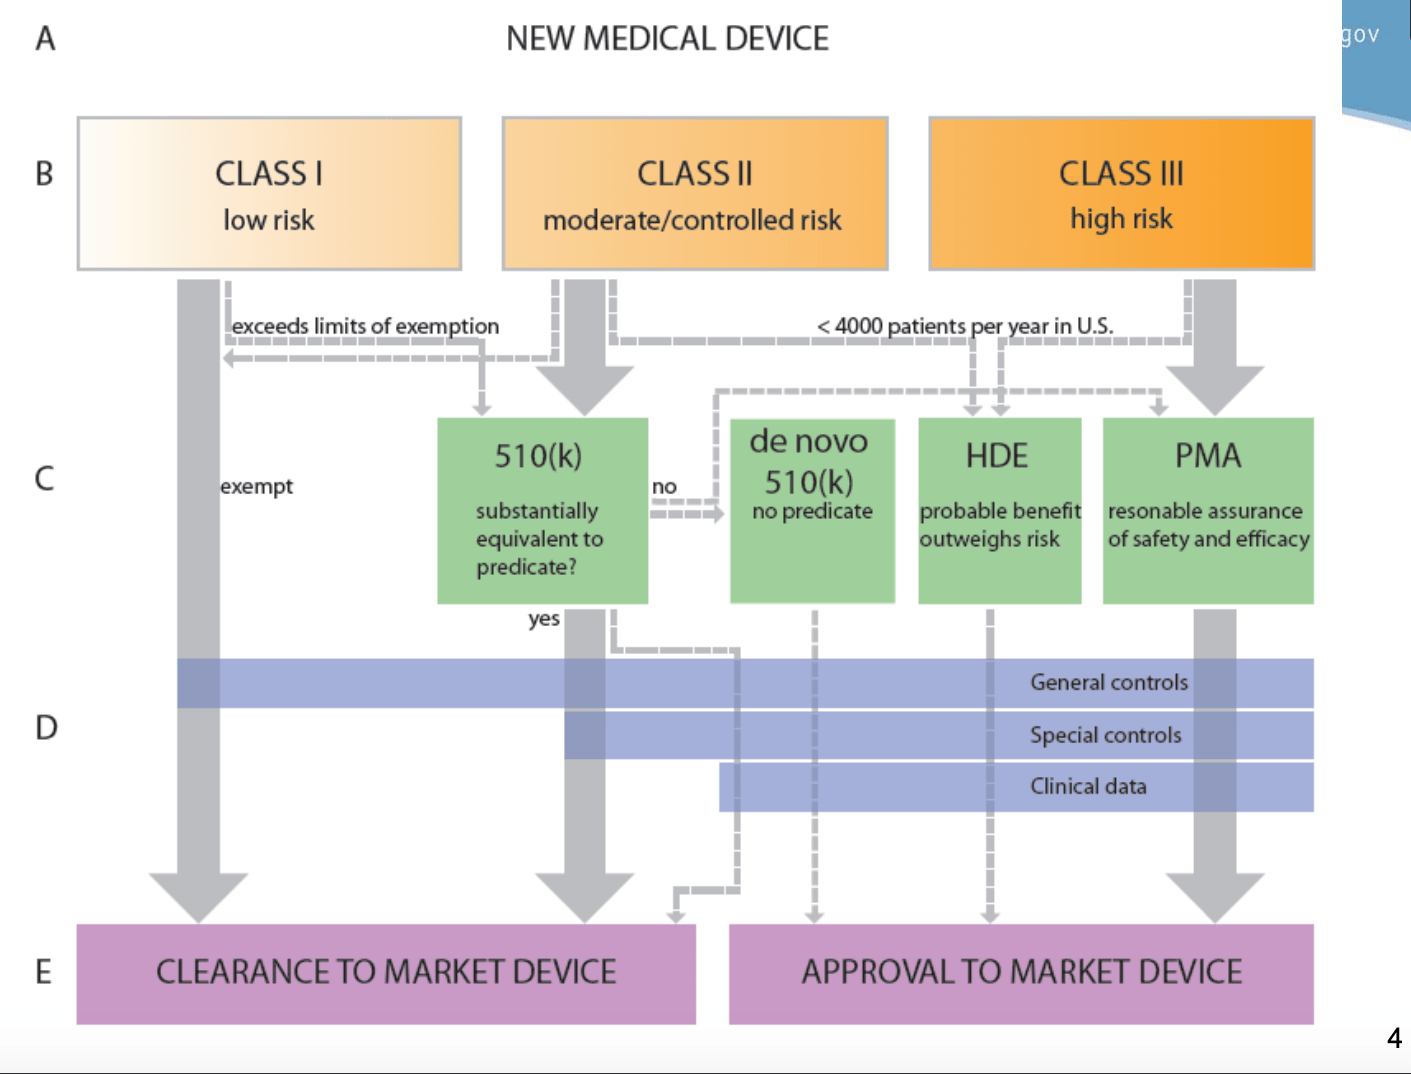 Fig, 01: Flowchart of the approvals. Source: FDA.